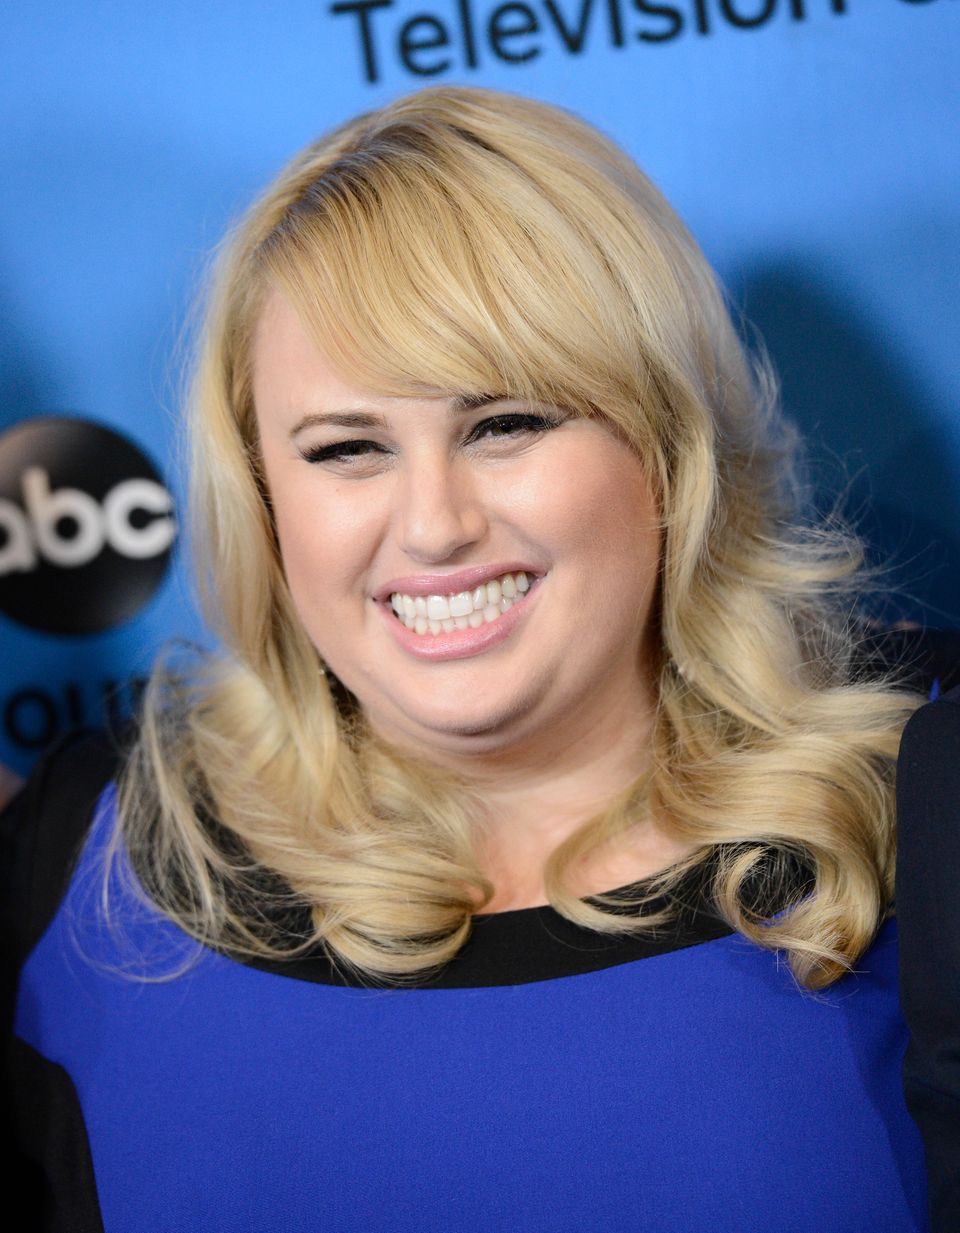 Actress Rebel Wilson arrives at the Disney/ABC 2013 Summer TCA Party at the Beverly Hilton Hotel on Sunday, August 4, 2013 in